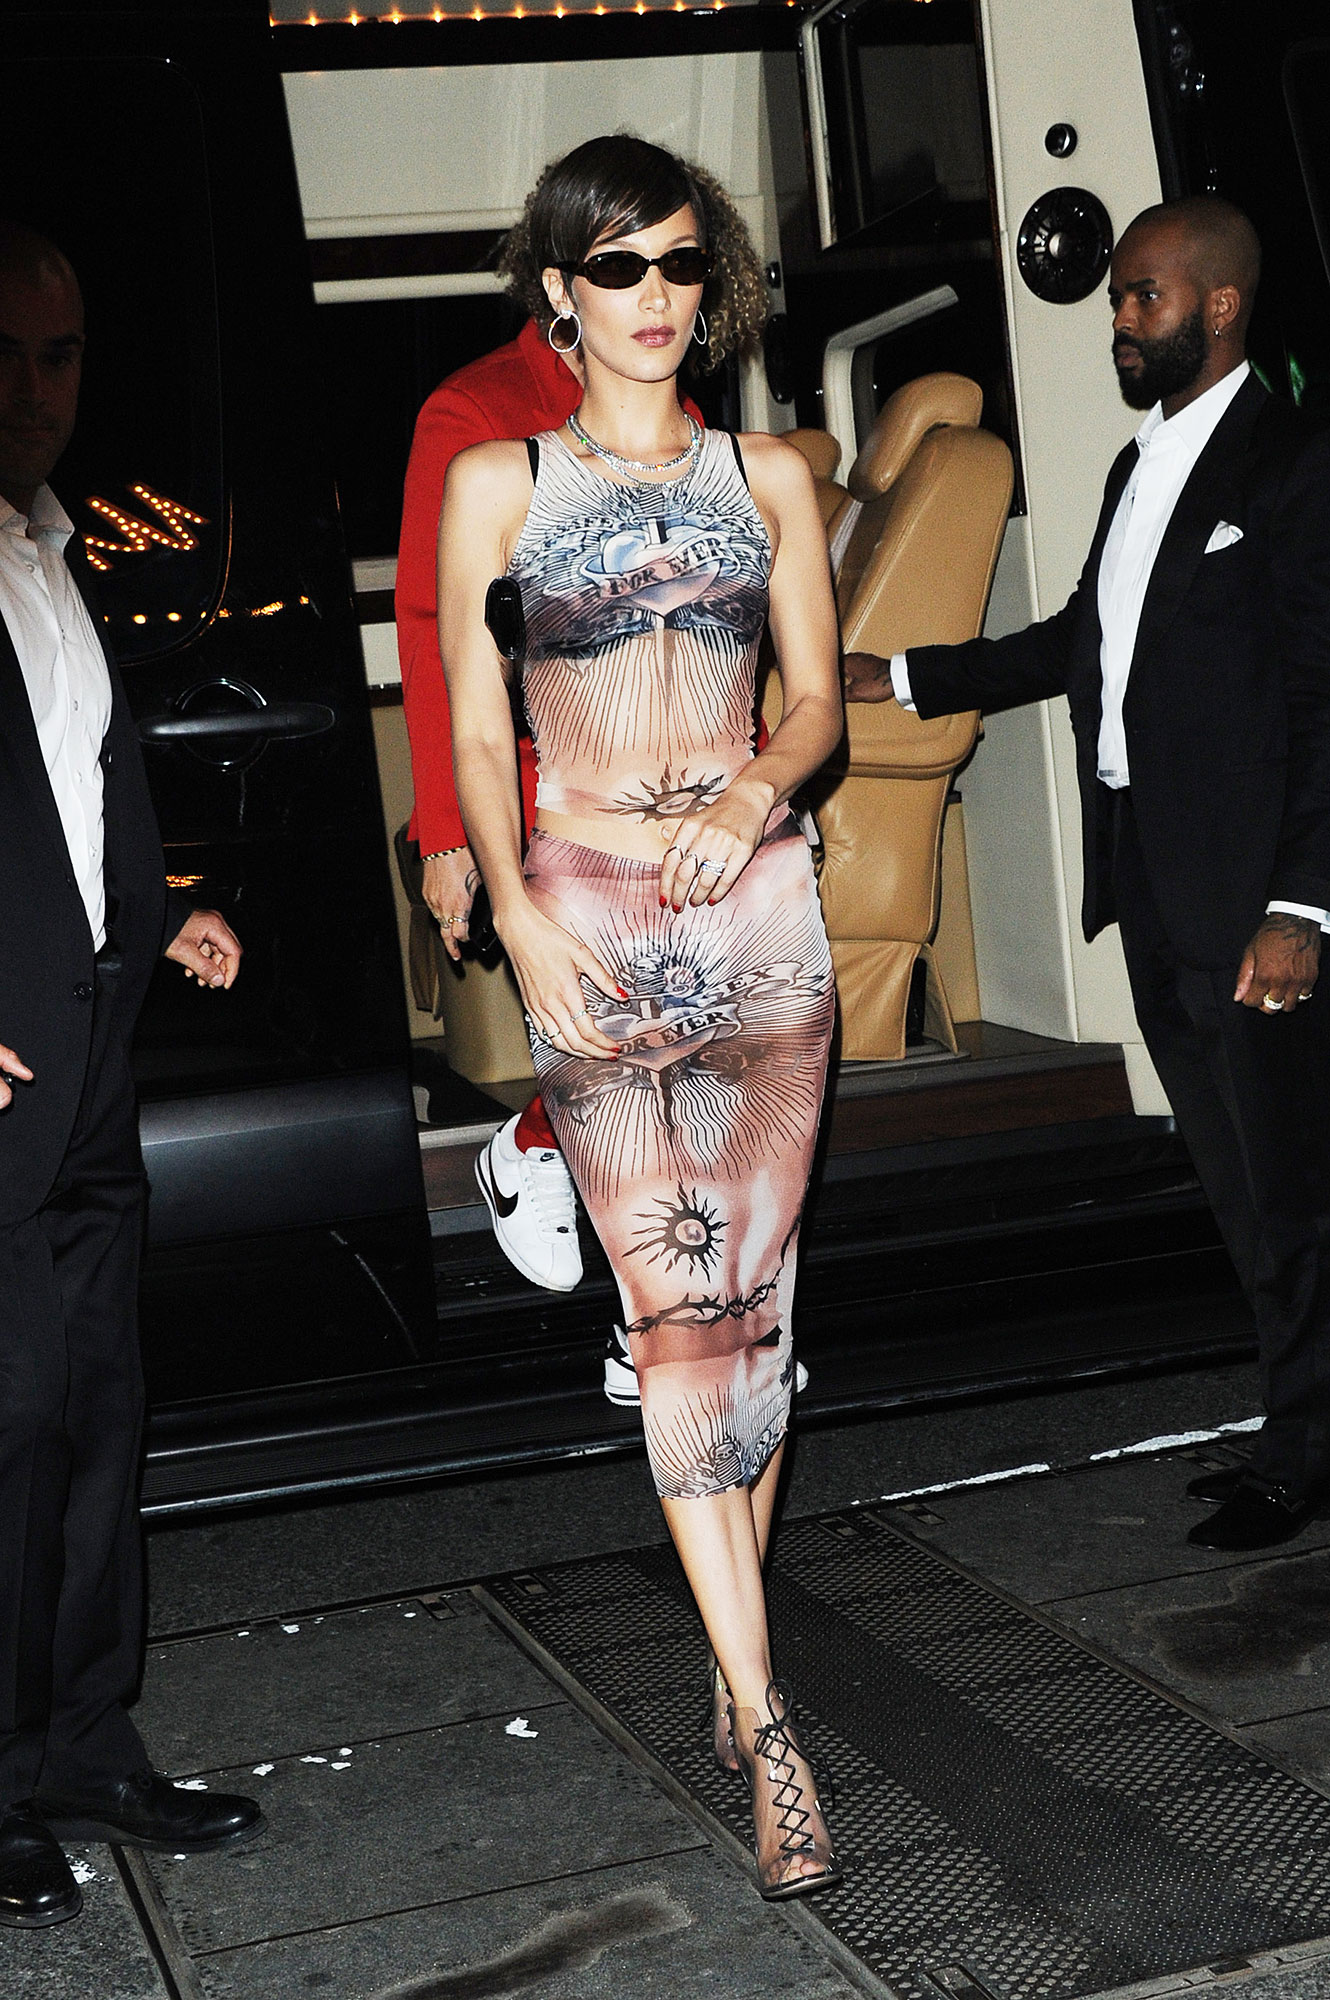 Bella Hadid after party met gala 2019 - The brunette beauty hit up Up & Down in a form-fitting print dress and her signature tiny shades.